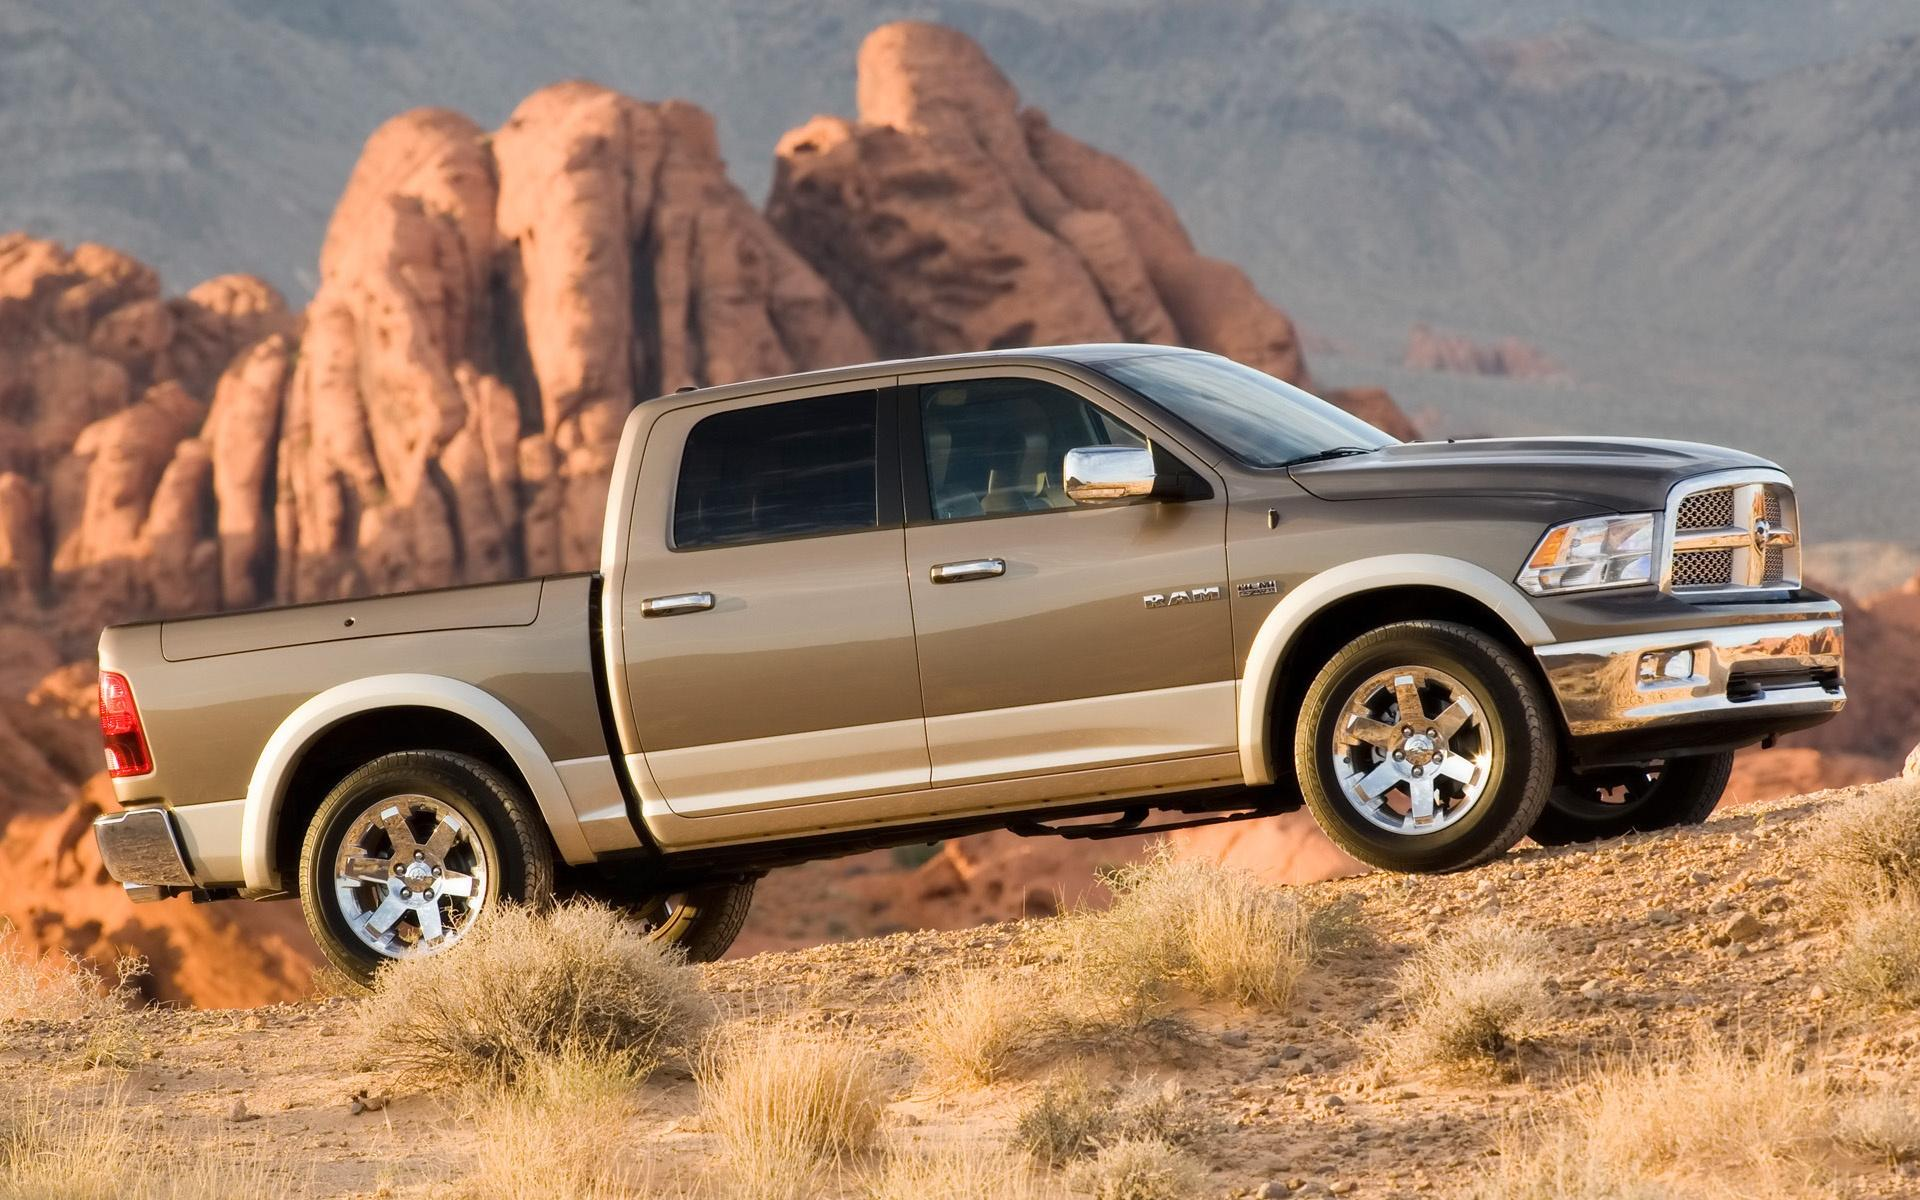 2009 Dodge Ram Laramie Side Angle 1920x1200